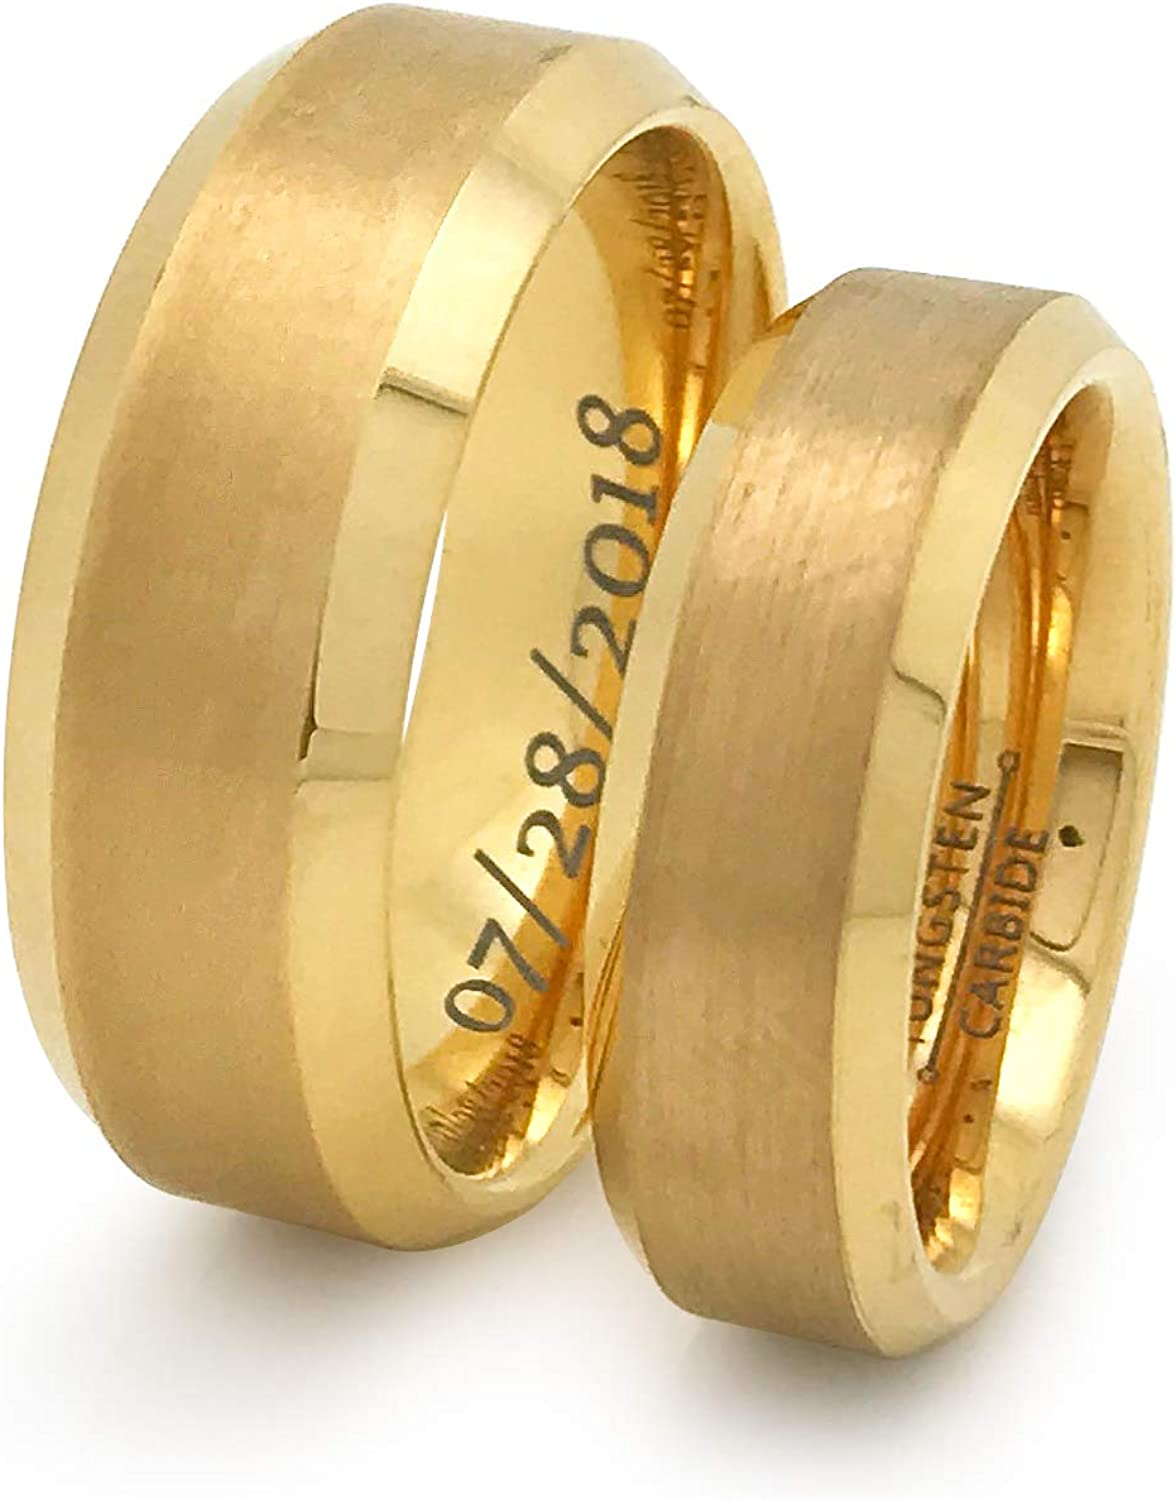 Mens Gold Wedding Band 8mm Gold Plated Tungsten Wedding Ring Men Personalized Custom Engraving Promise Ring Anniversary Ring Unique Gift